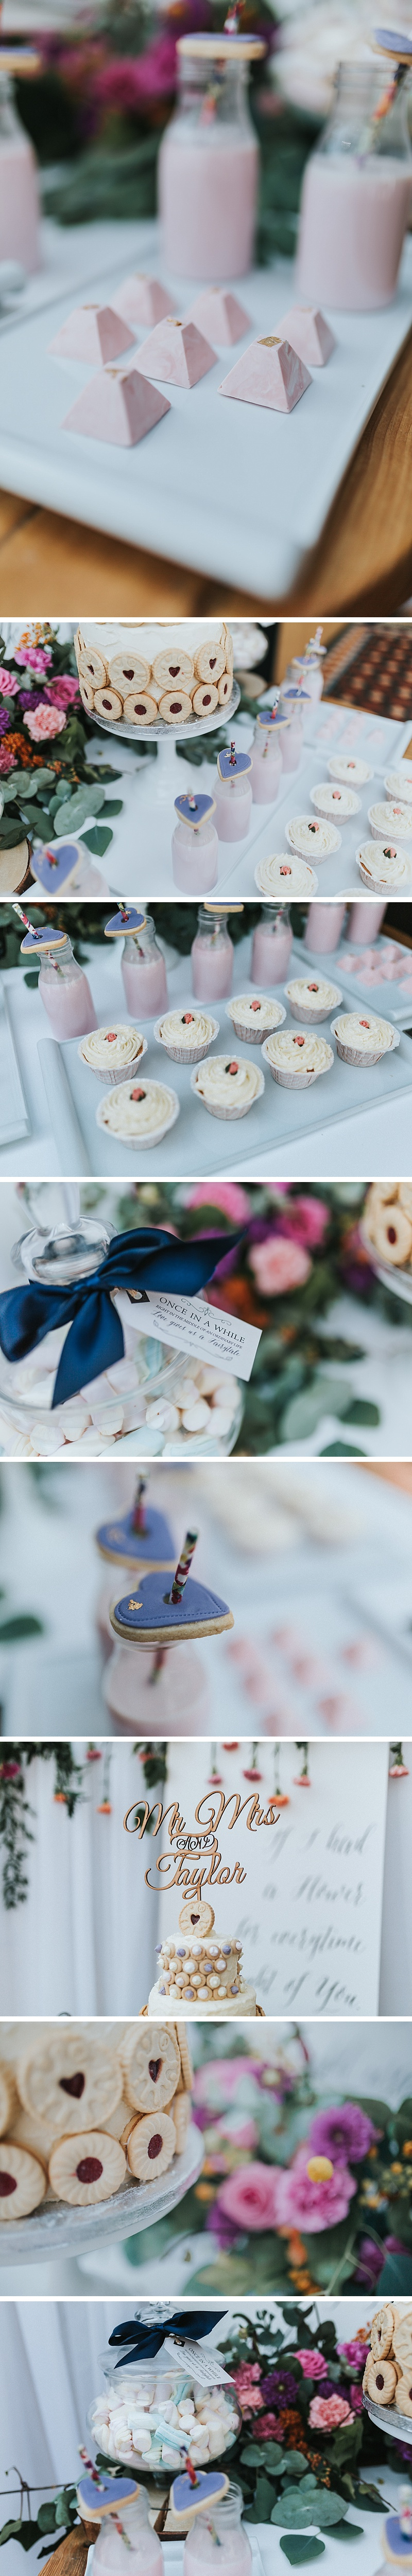 dessert table by whimsical cakes Leeds